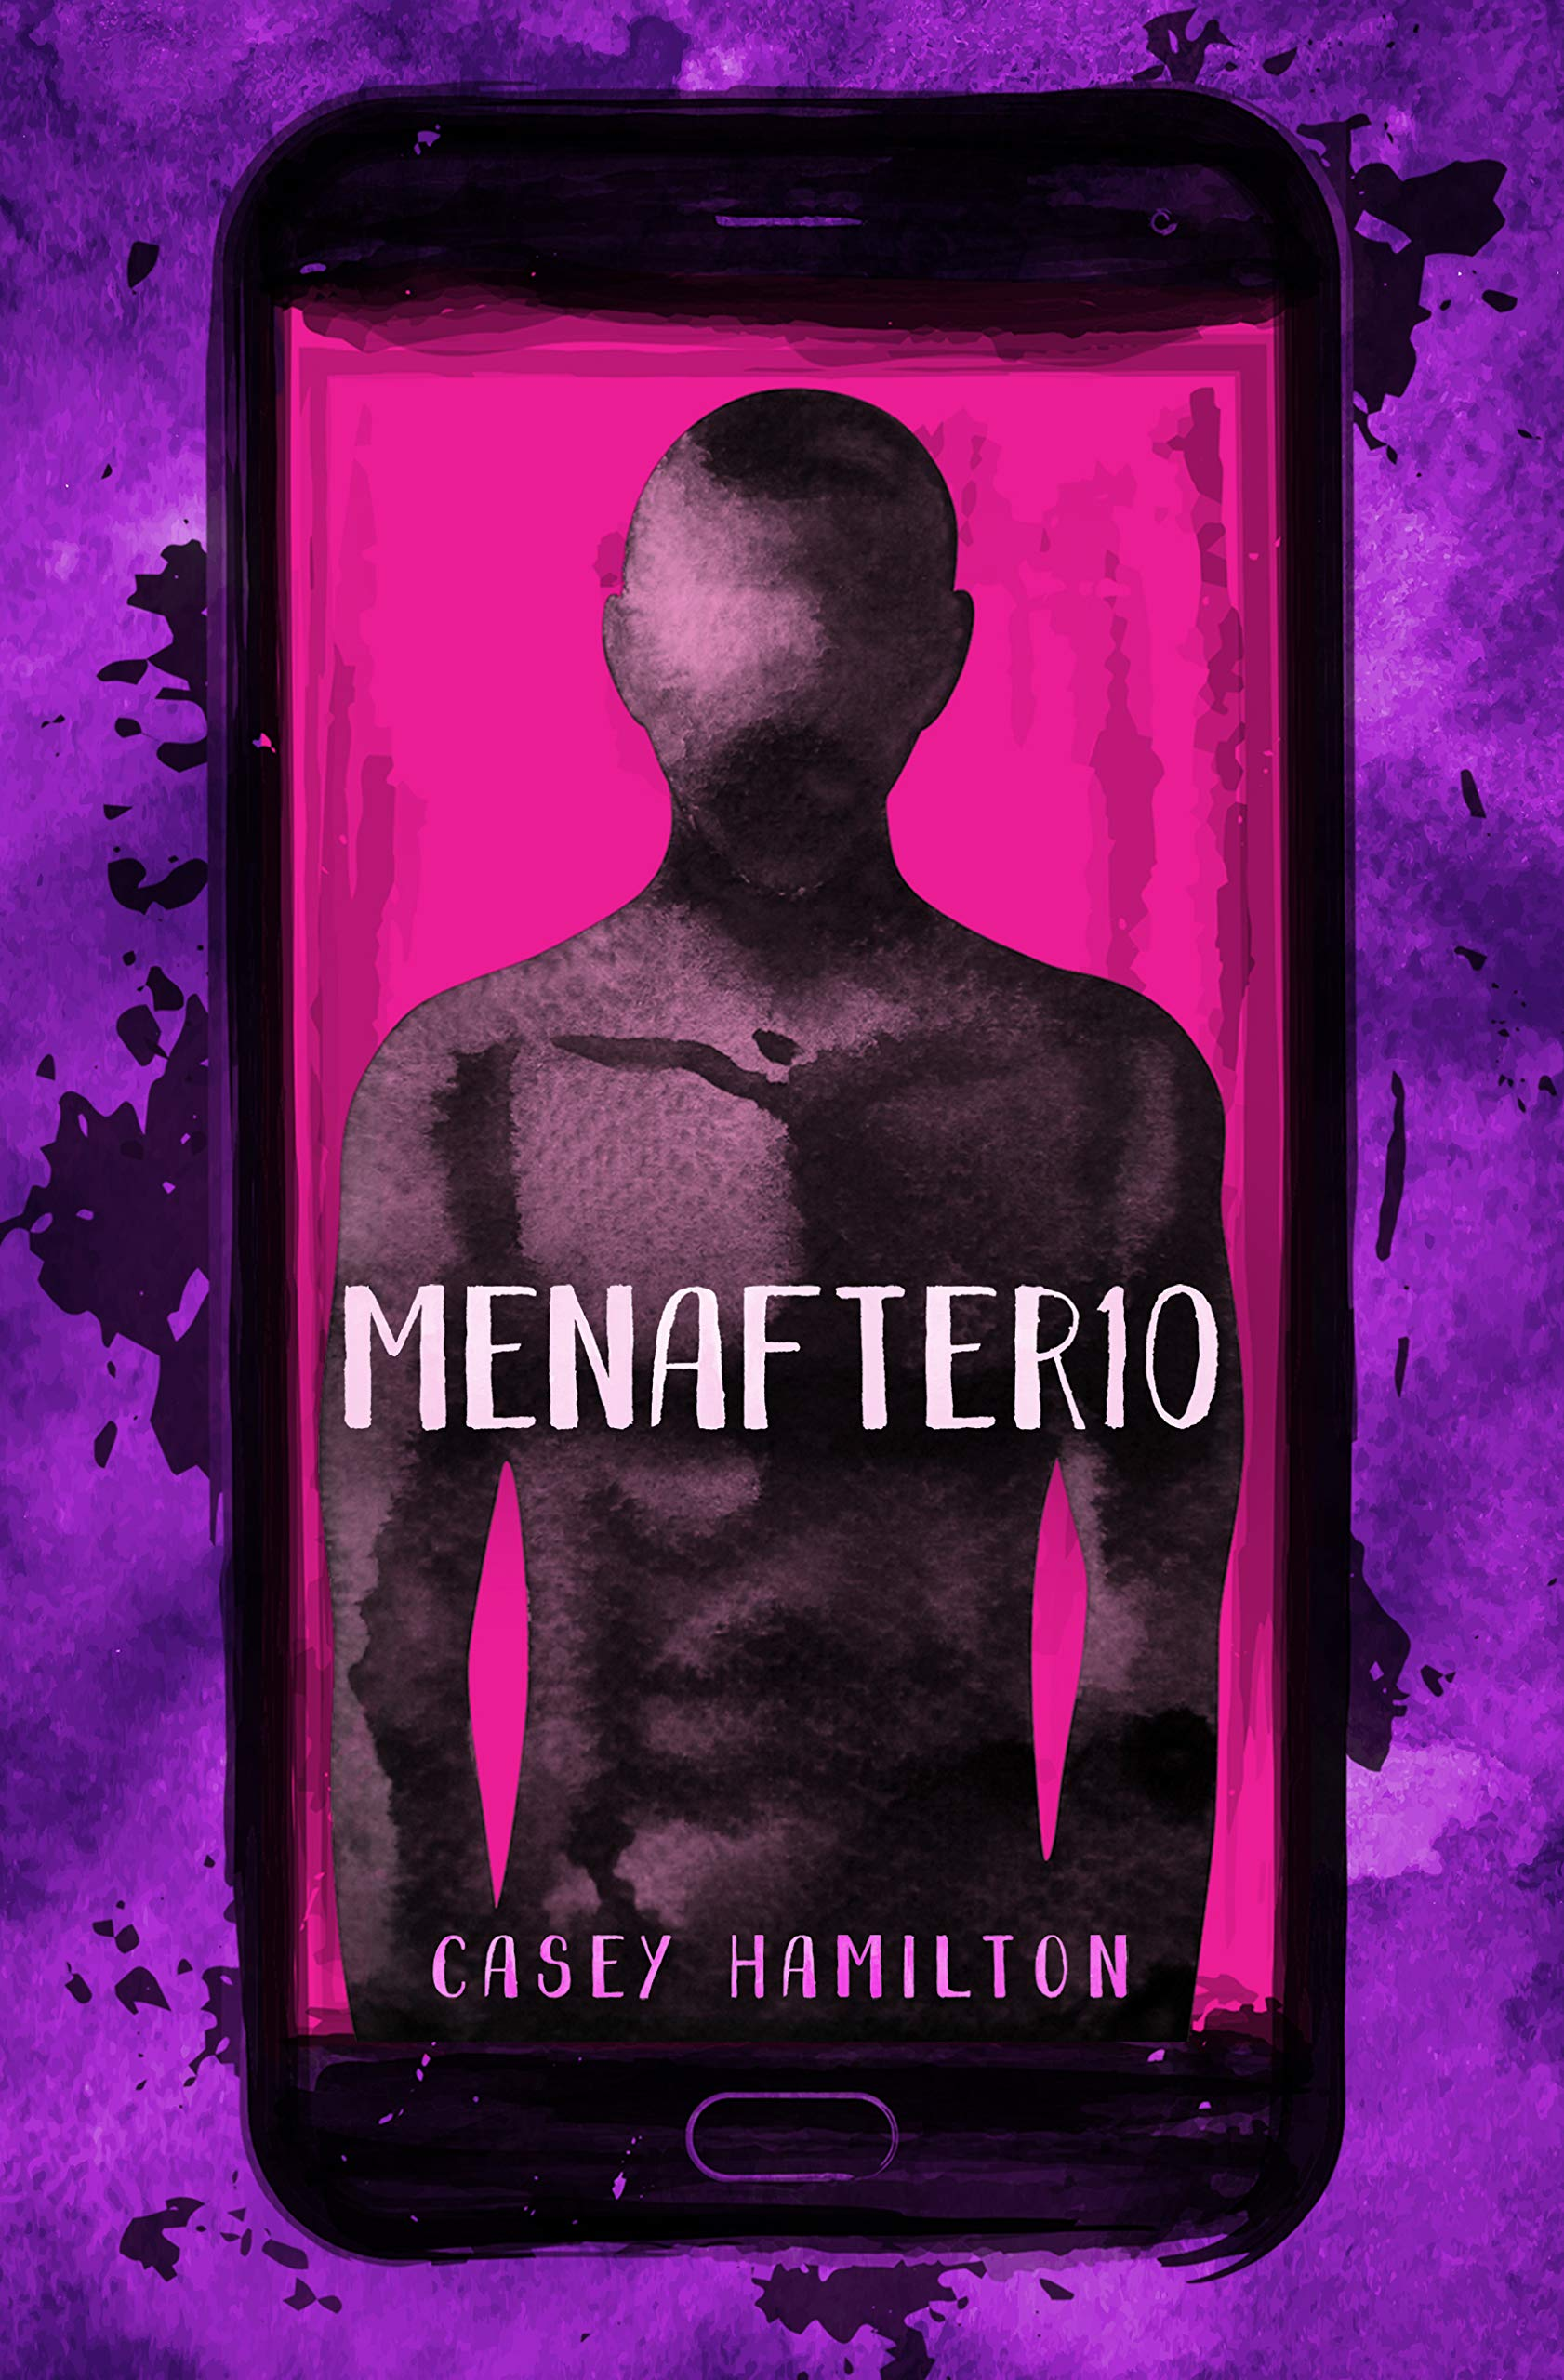 Two Black Queer Men Talking: Gar McVey-Russell Chats With Casey Hamilton About His Debut Novel MENAFTER10 image